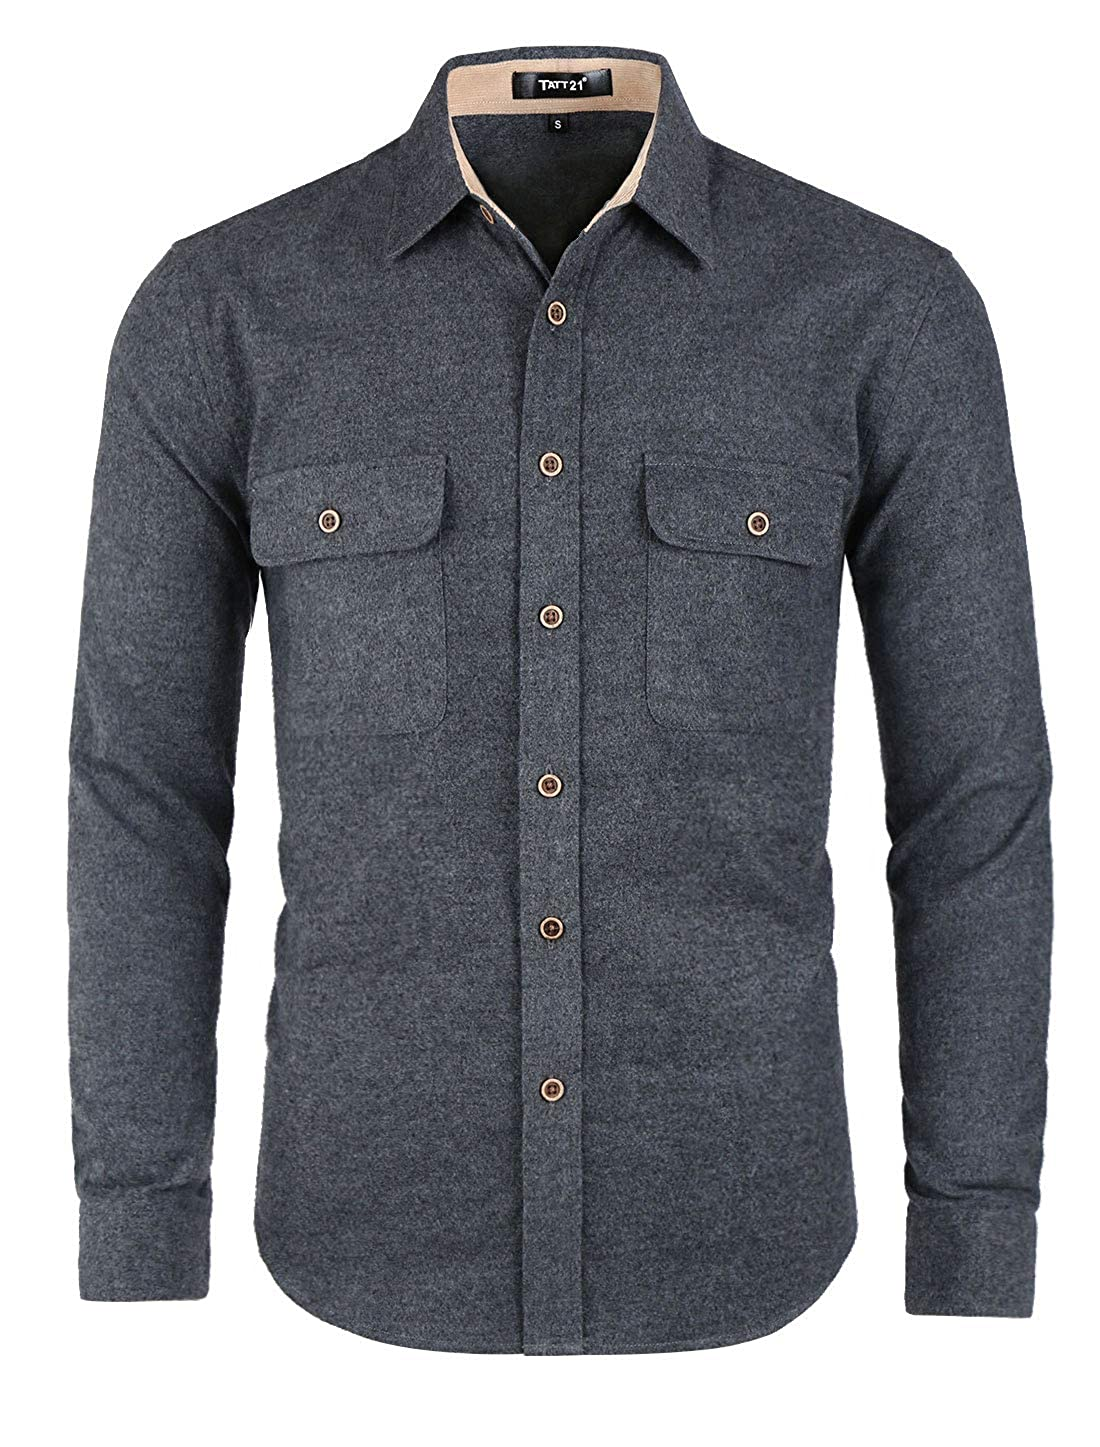 TATT 21 Men Two Pockets Button Down Shirt Contrast Brushed Long Sleeve Cotton Casual Overshirt